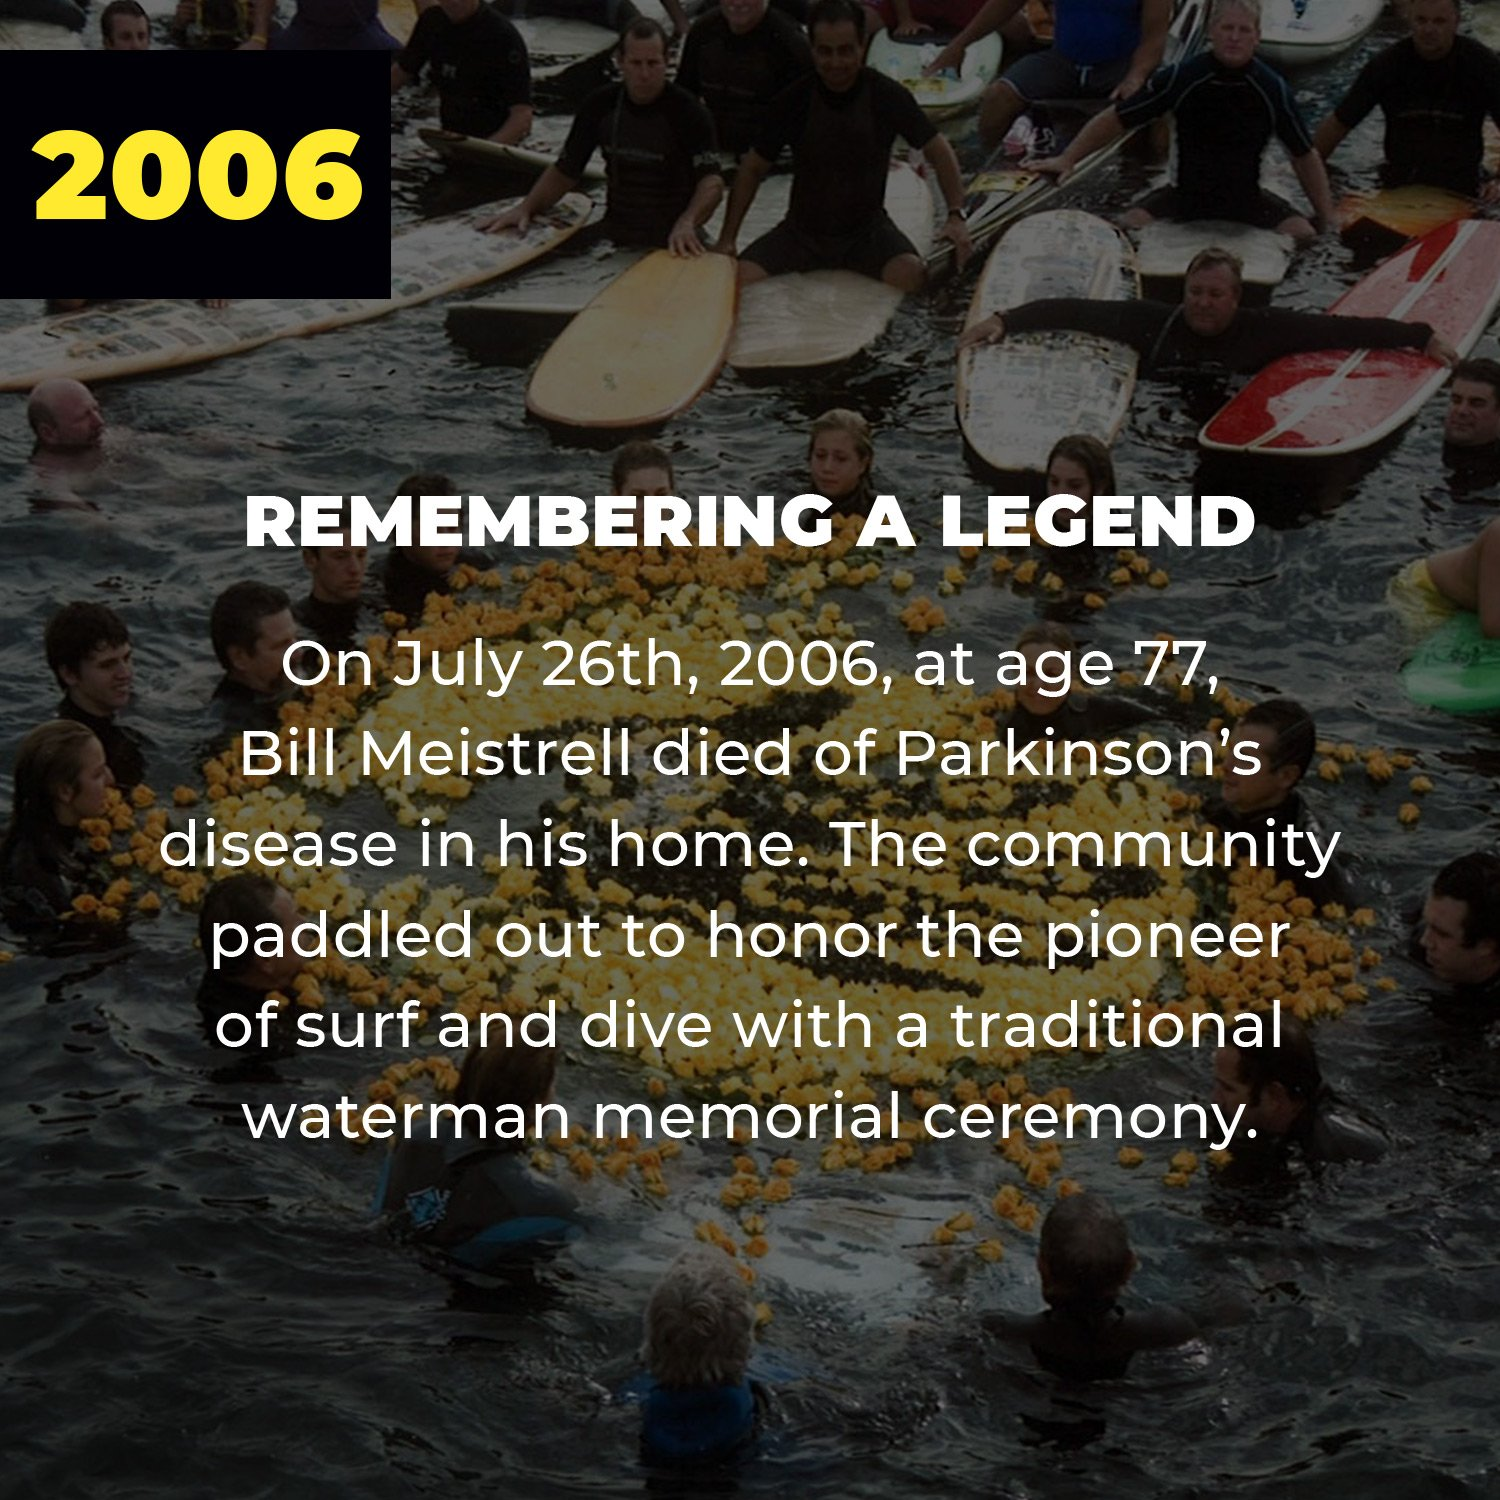 2006 | Remembering a Legend | On July 26th, 2006, at age 77, Bill Meistrell died of Parkinson's disease in his home. The community paddled out to honor the pioneer of surf and dive with a traditional waterman memorial ceremony.